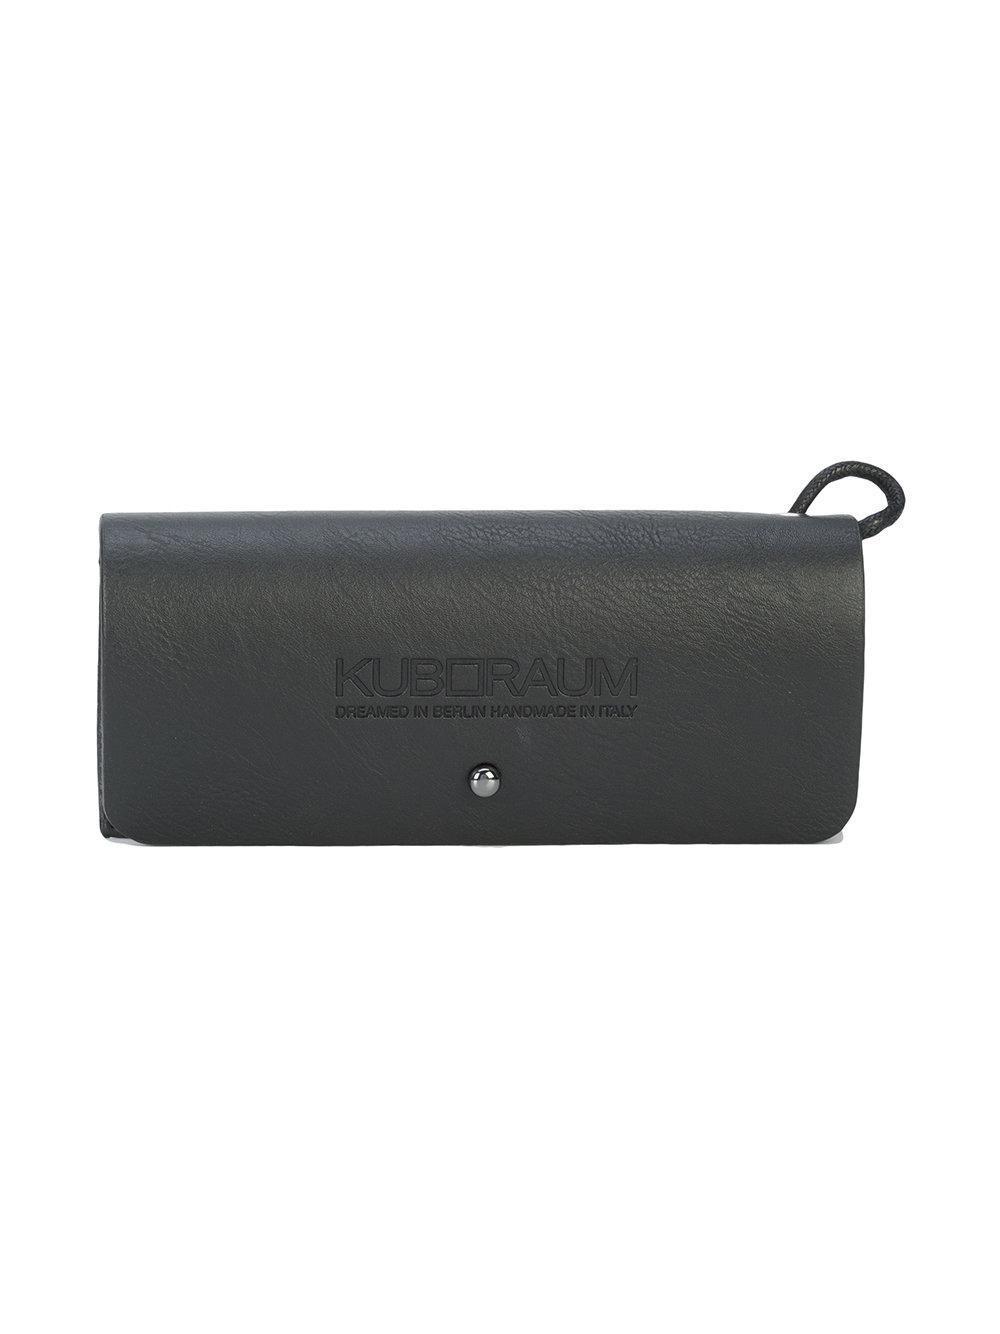 Kuboraum Round Tinted Sunglasses in Grey (Grey)